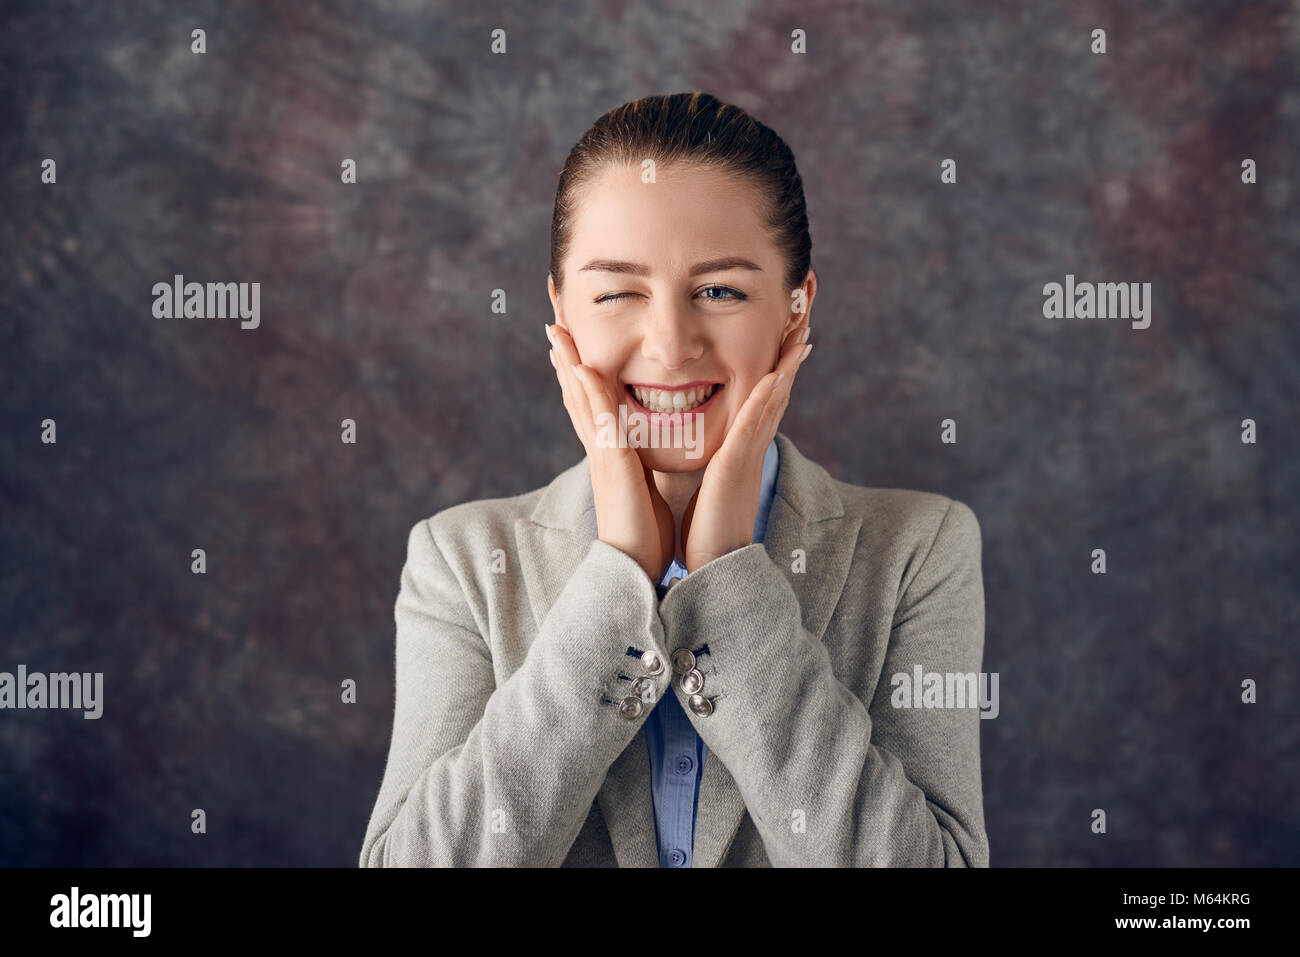 Cute attractive young woman winking as she grins happily at the camera while holding her hands to her cheeks over - Stock Image